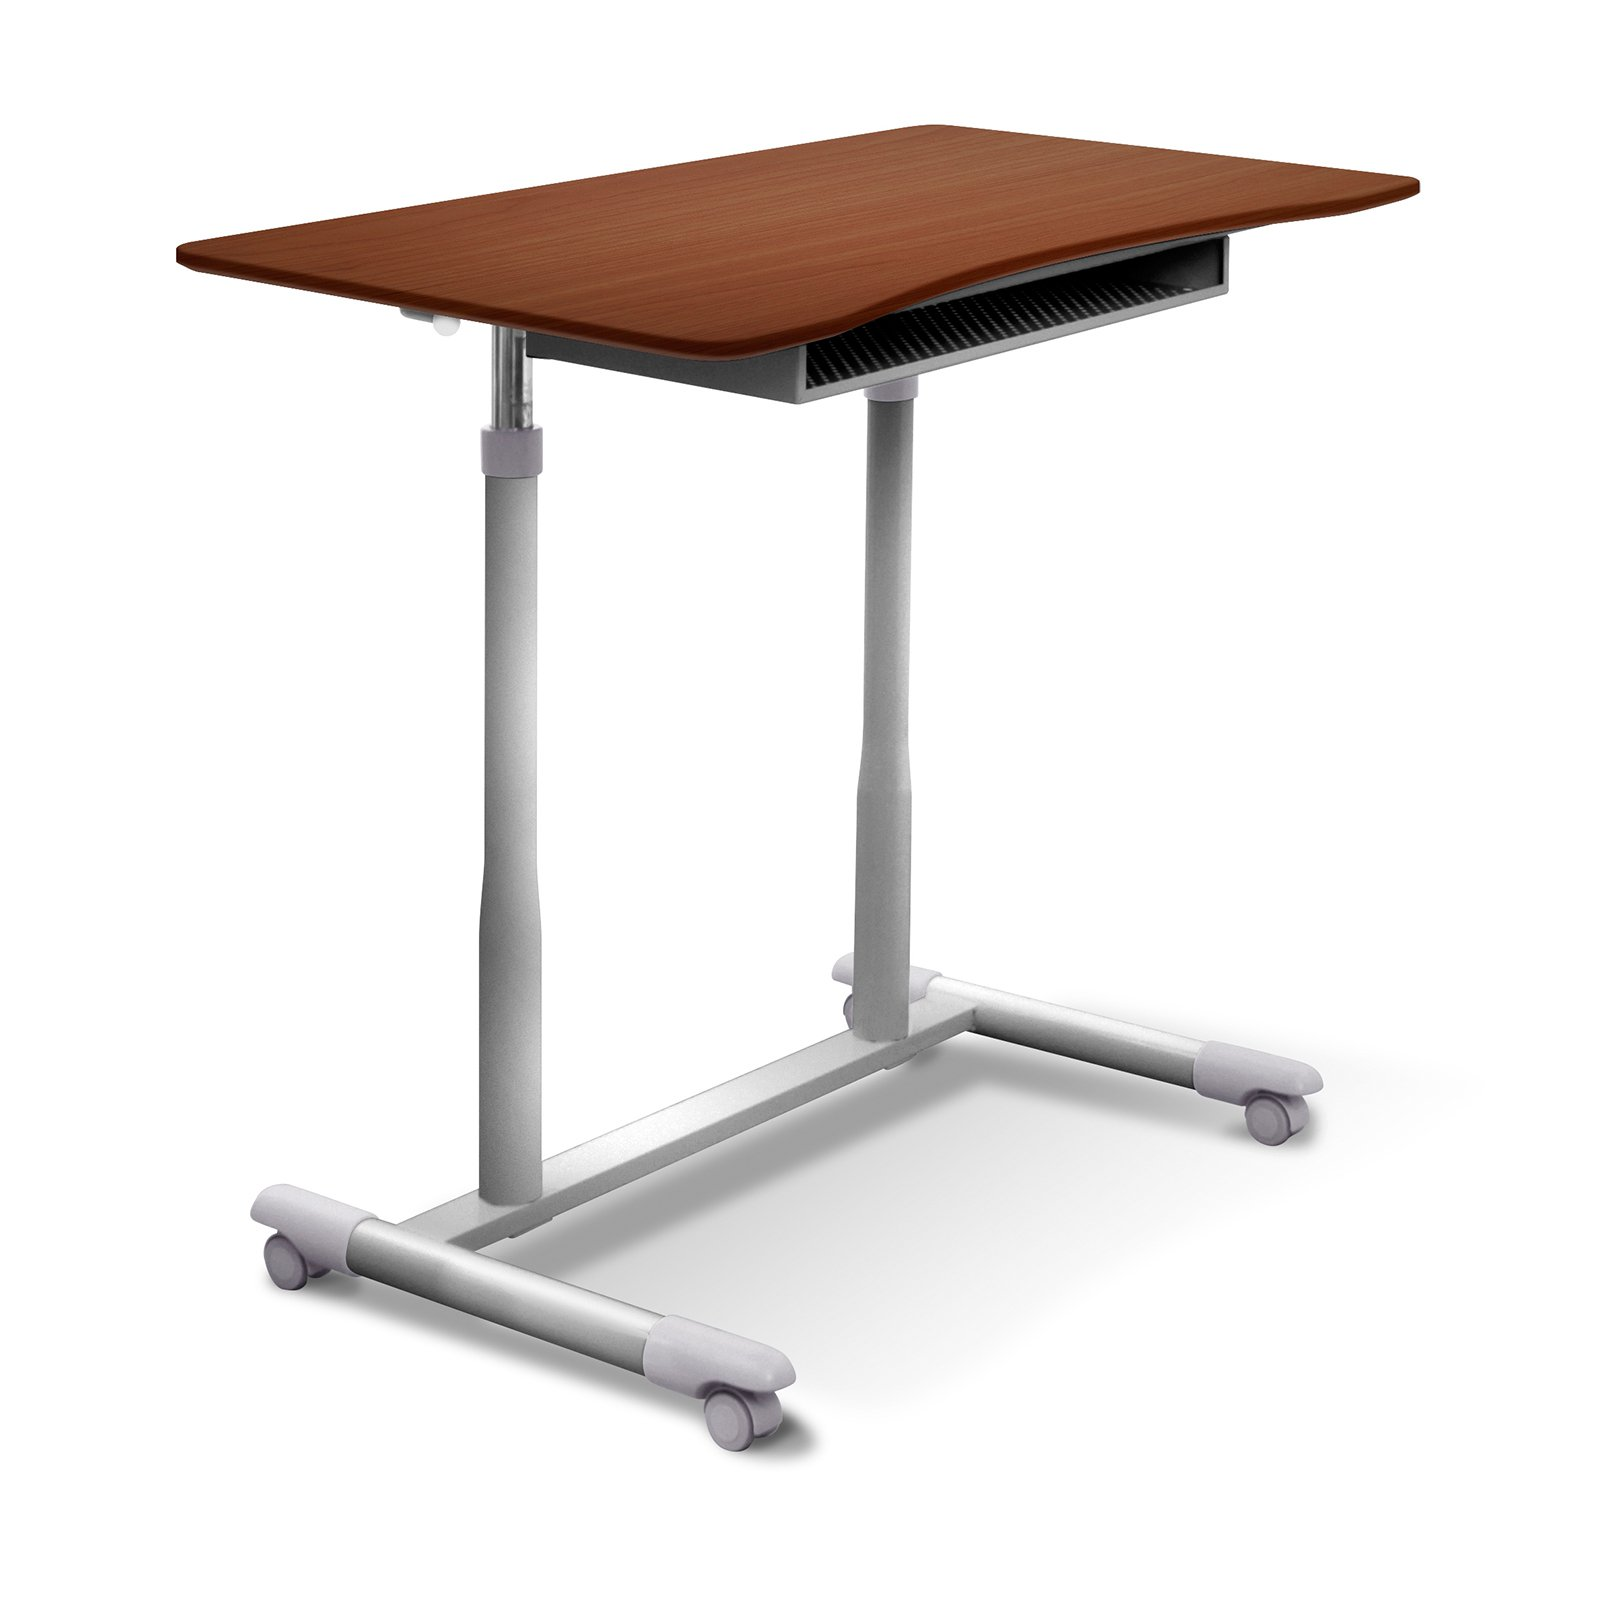 jesper office 205 series height adjustable standing desk - cherry